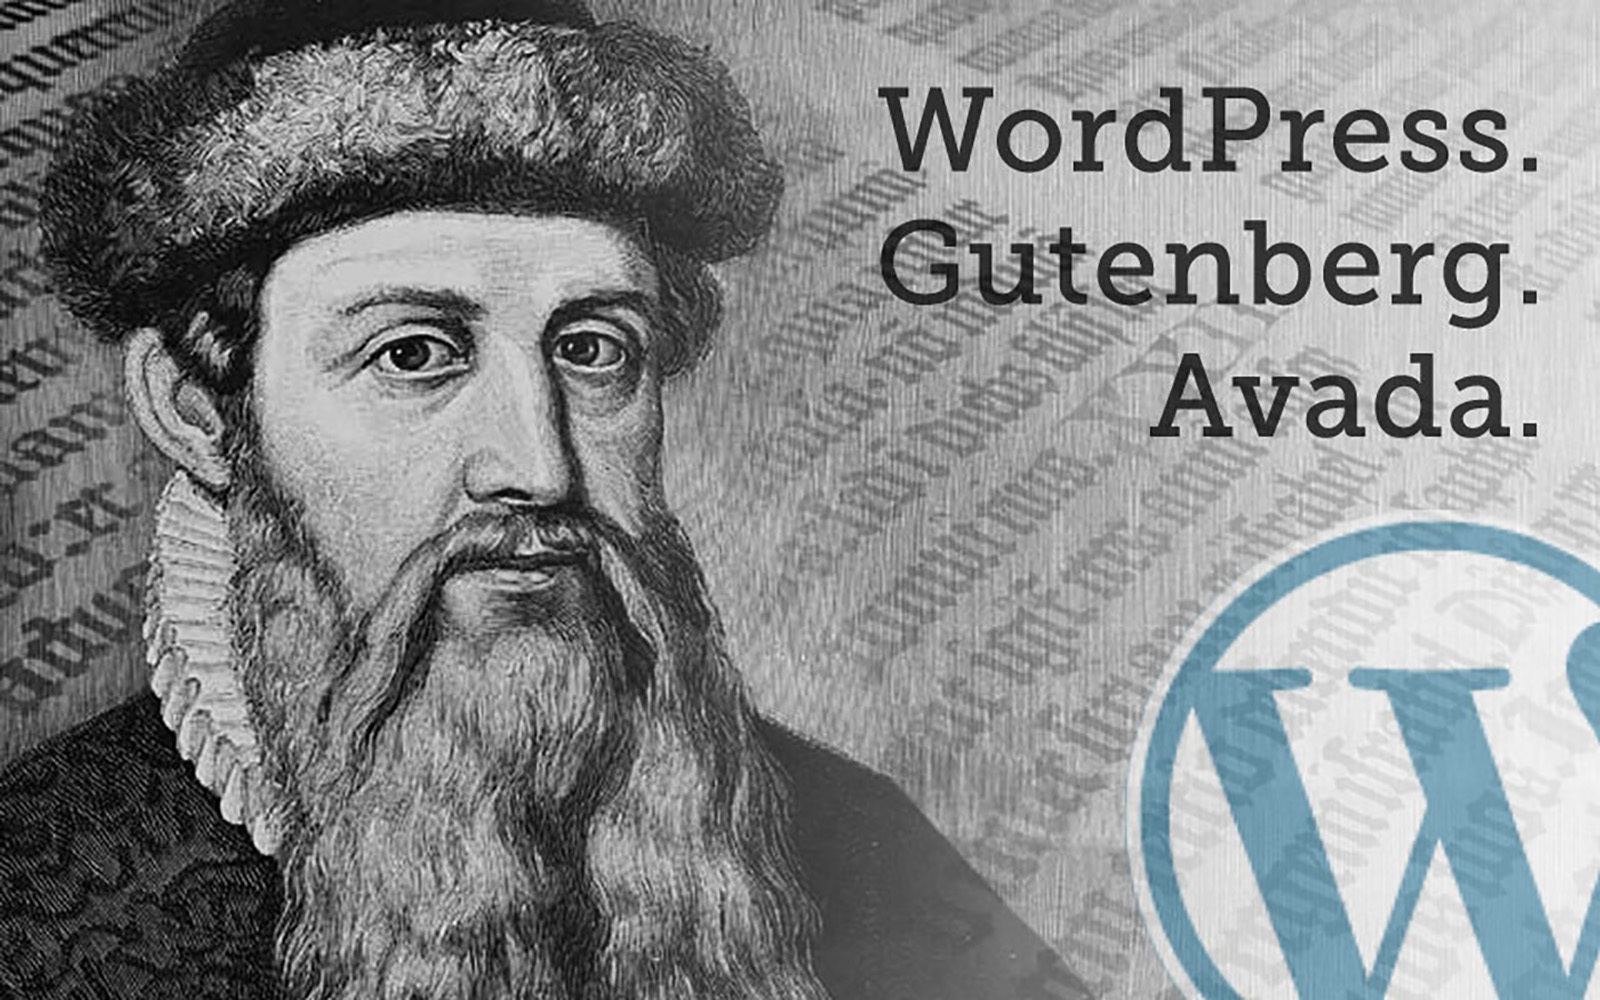 photo of Gutenberg with the WordPress logo